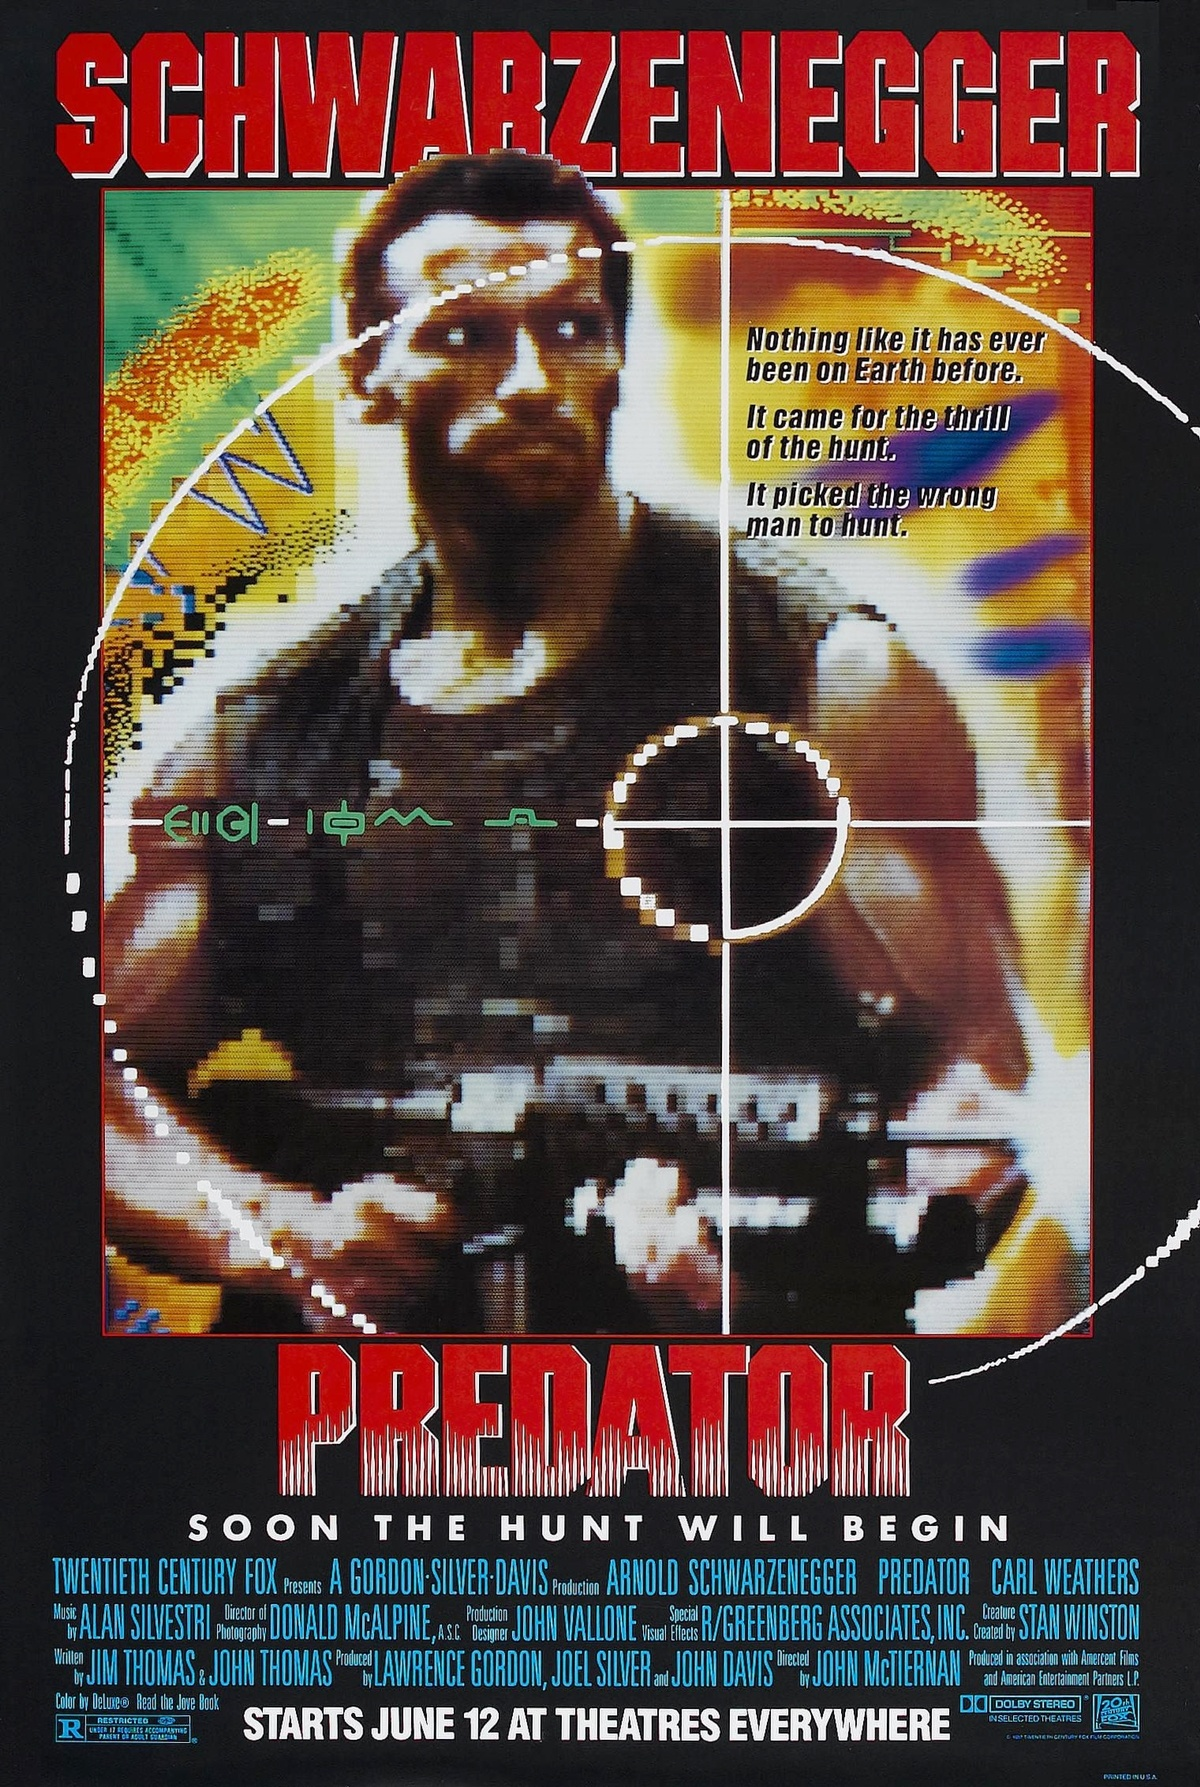 POSTER 3 12 Things You Might Not Have Realised About Predator